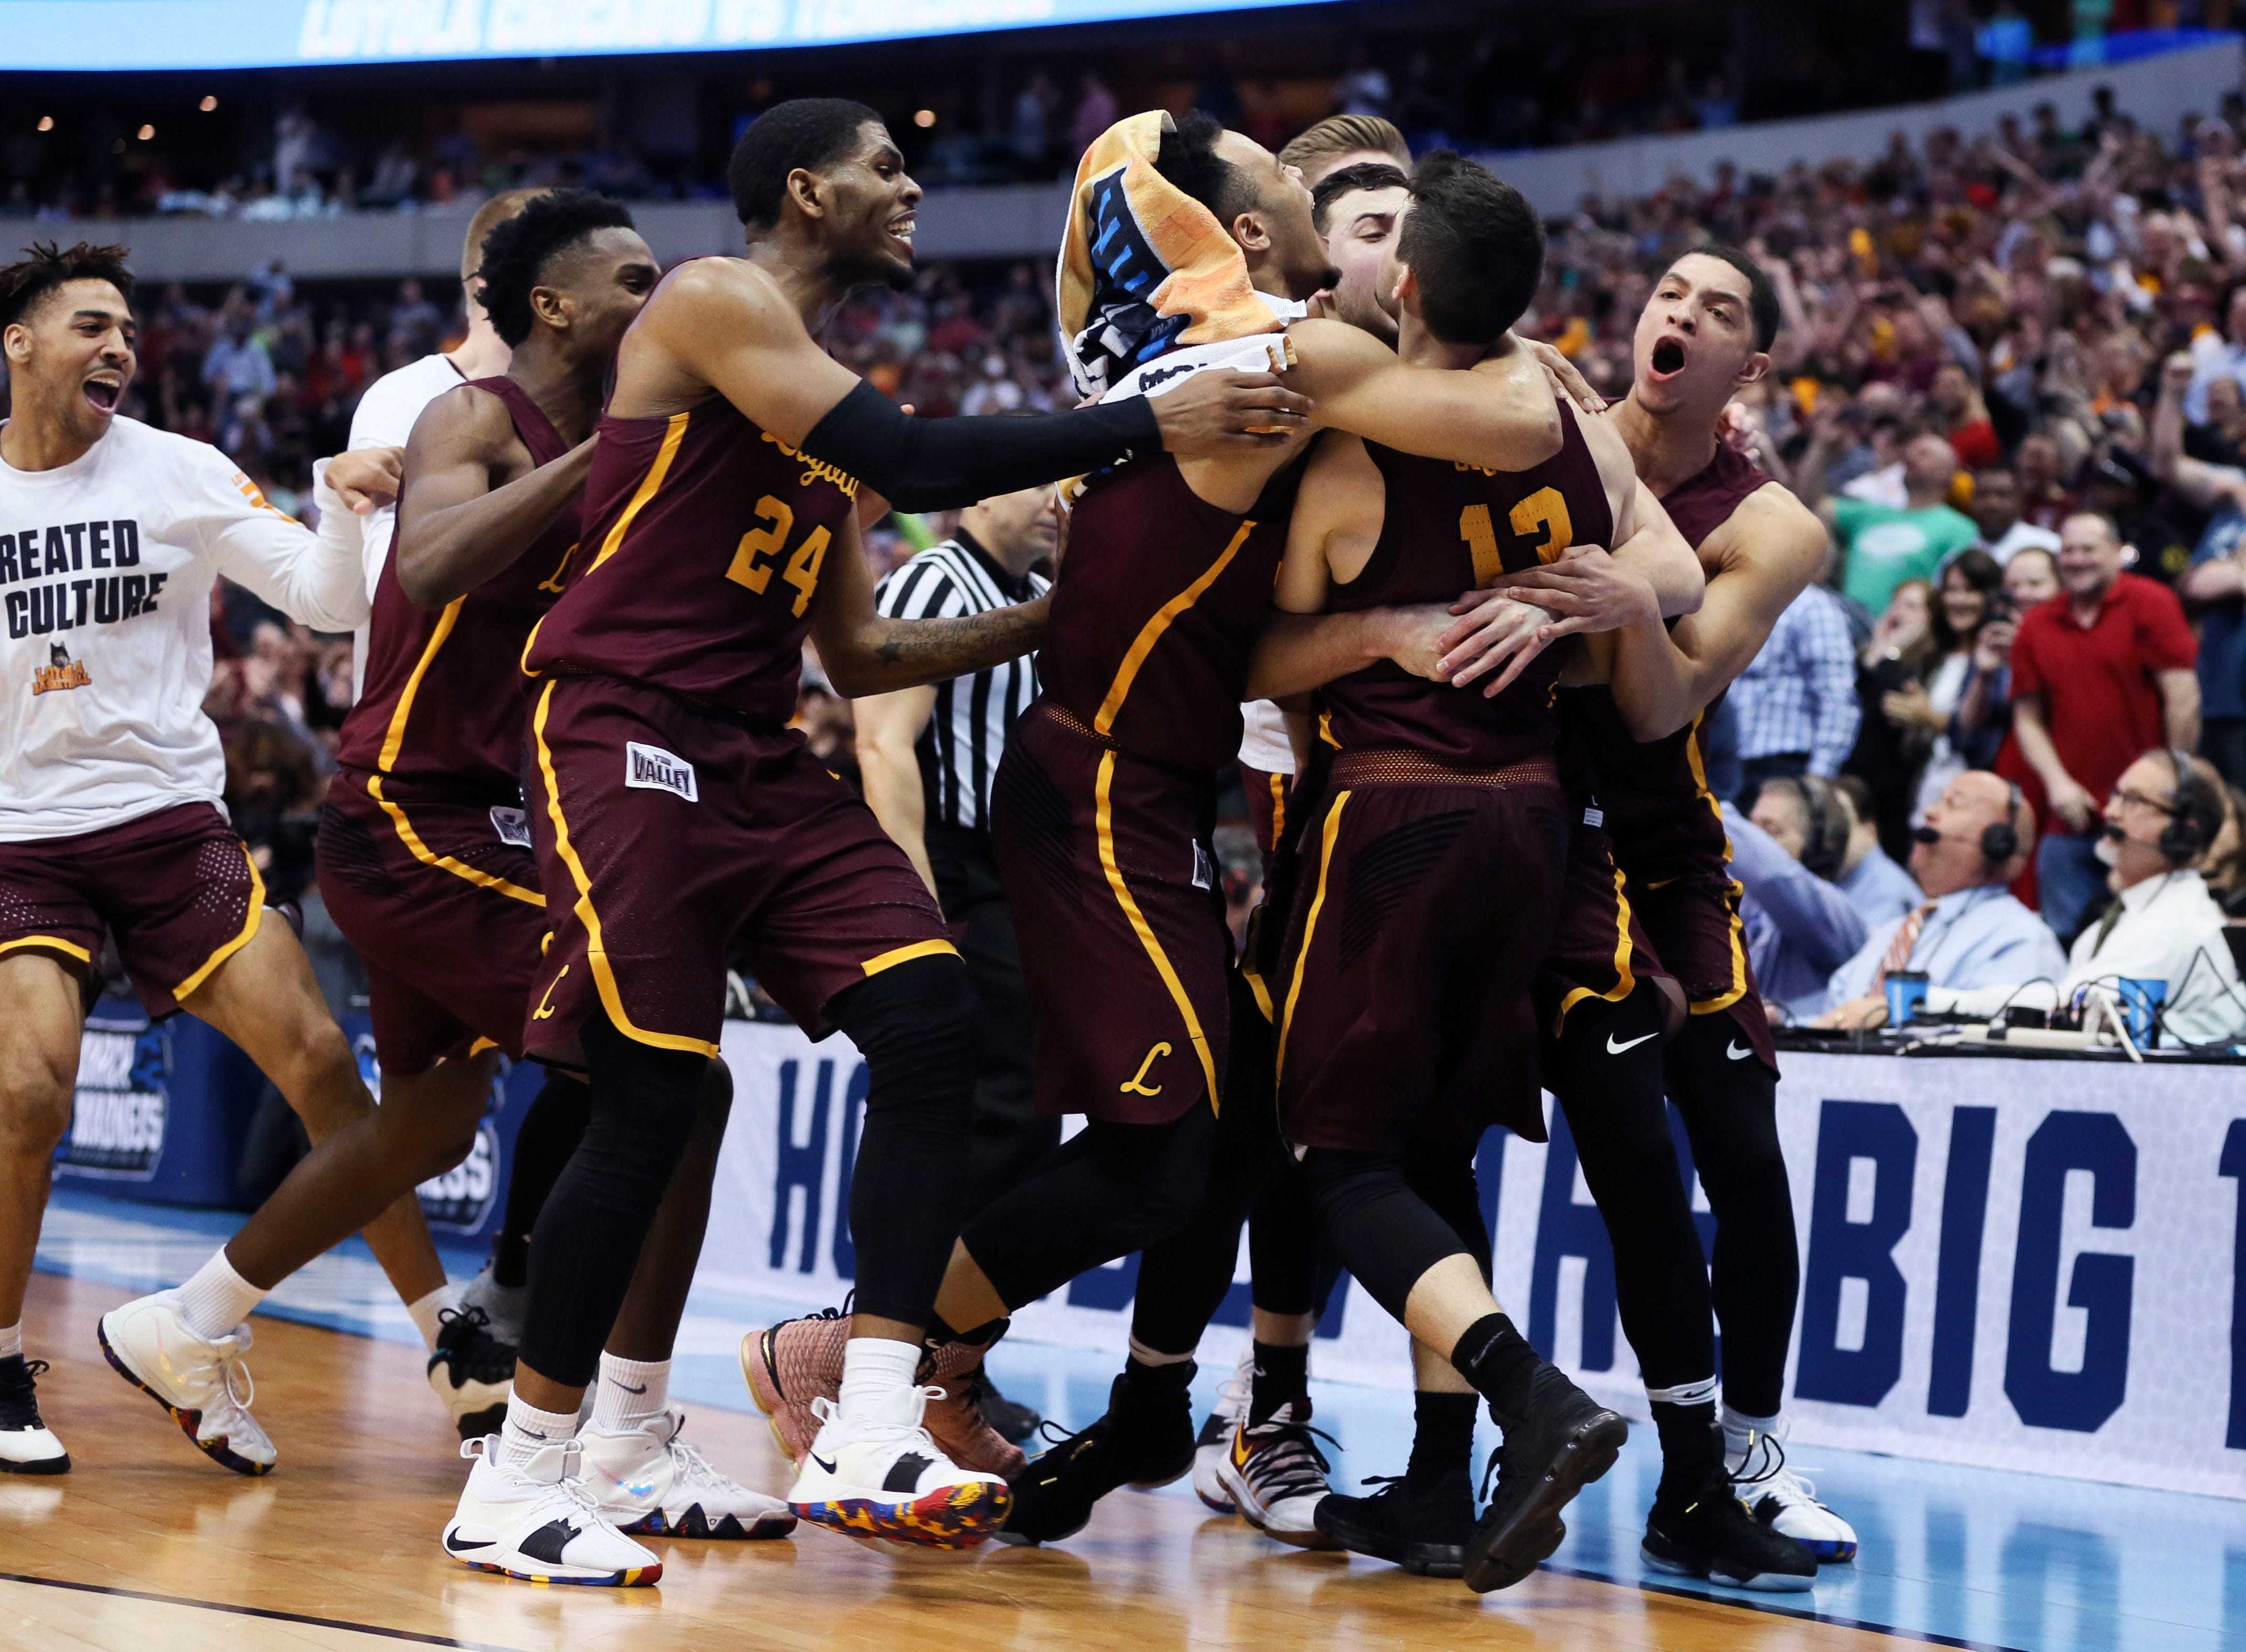 March 17: Loyola-Chicago guard Clayton Custer (13) celebrates with teammates after hitting the game-winning shot to defeat the Tennessee Volunteers in the second round of the NCAA tournament.